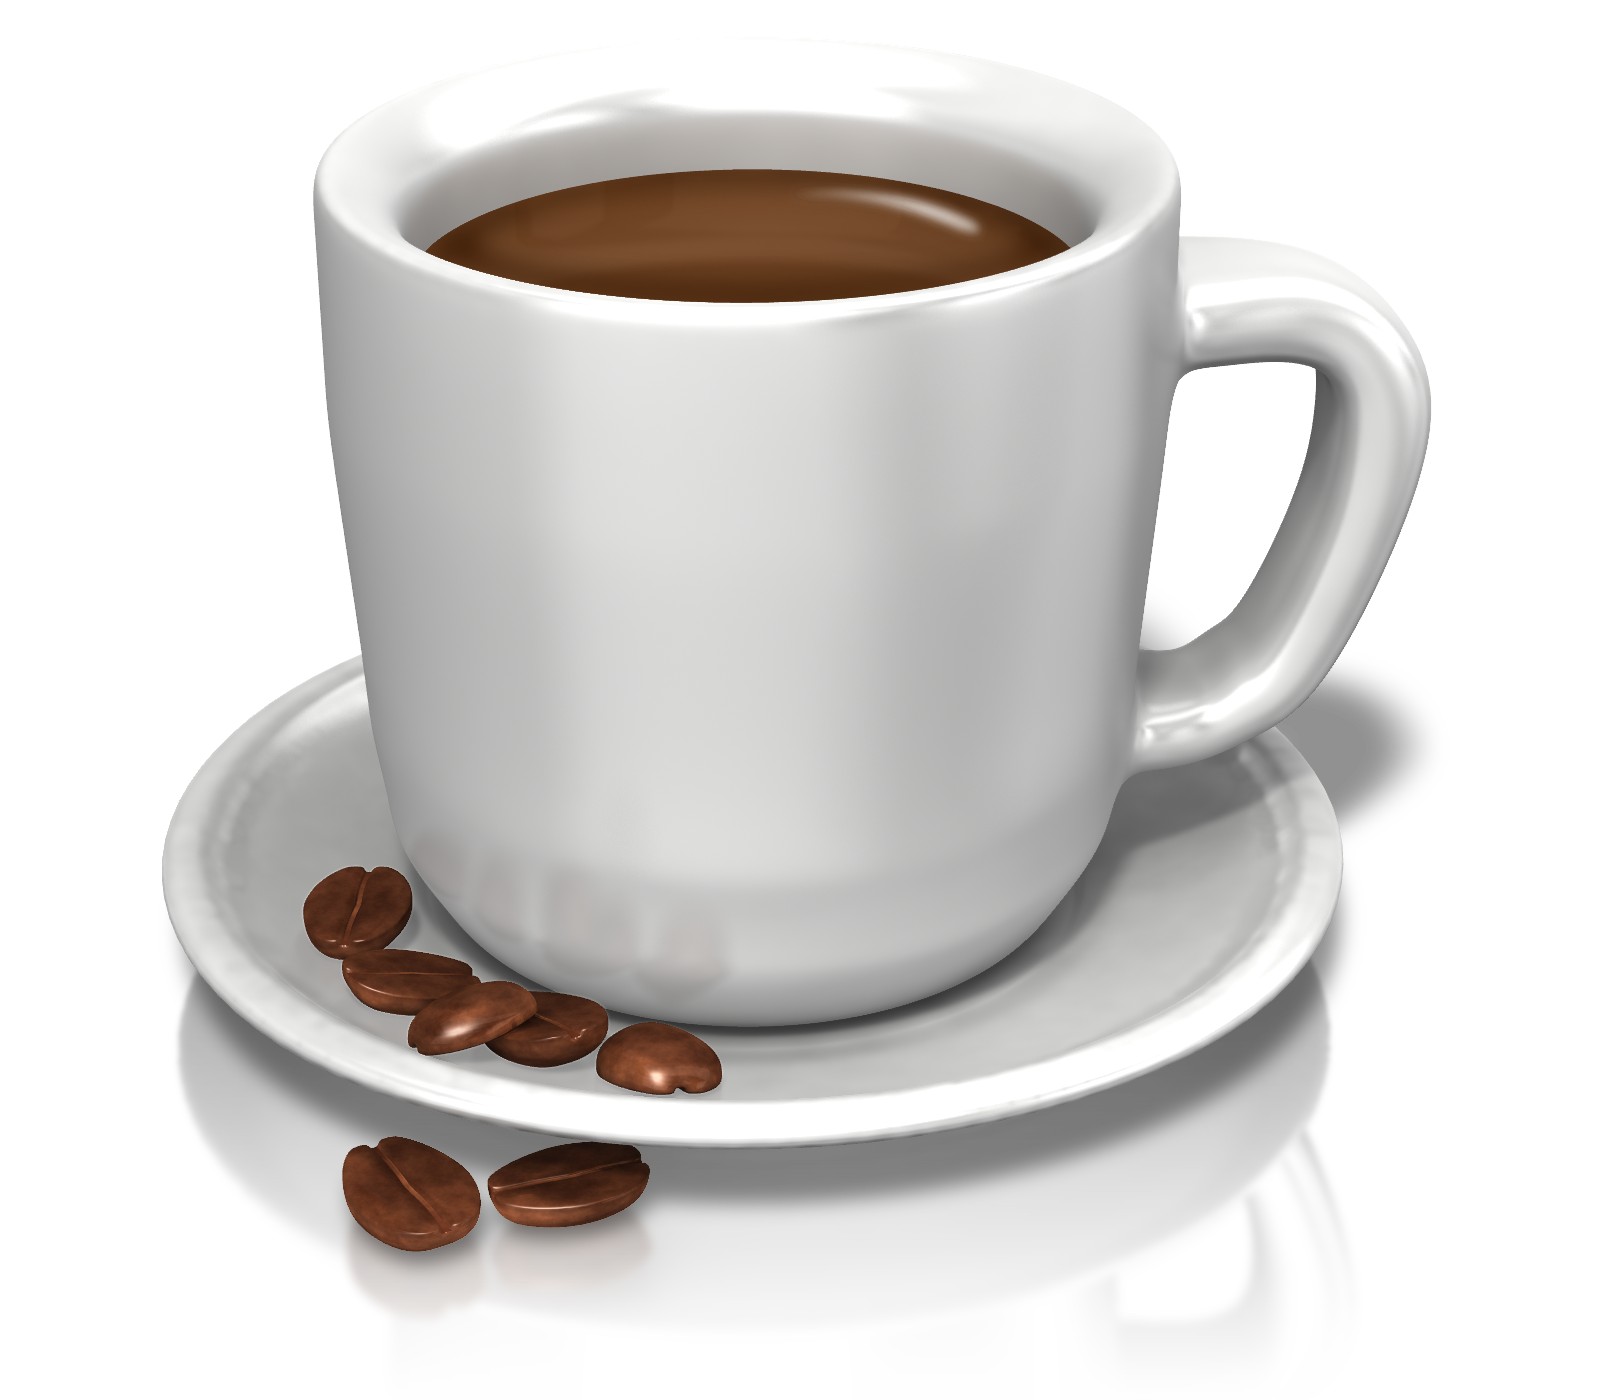 Coffee Cup Transparent Image PNG Image